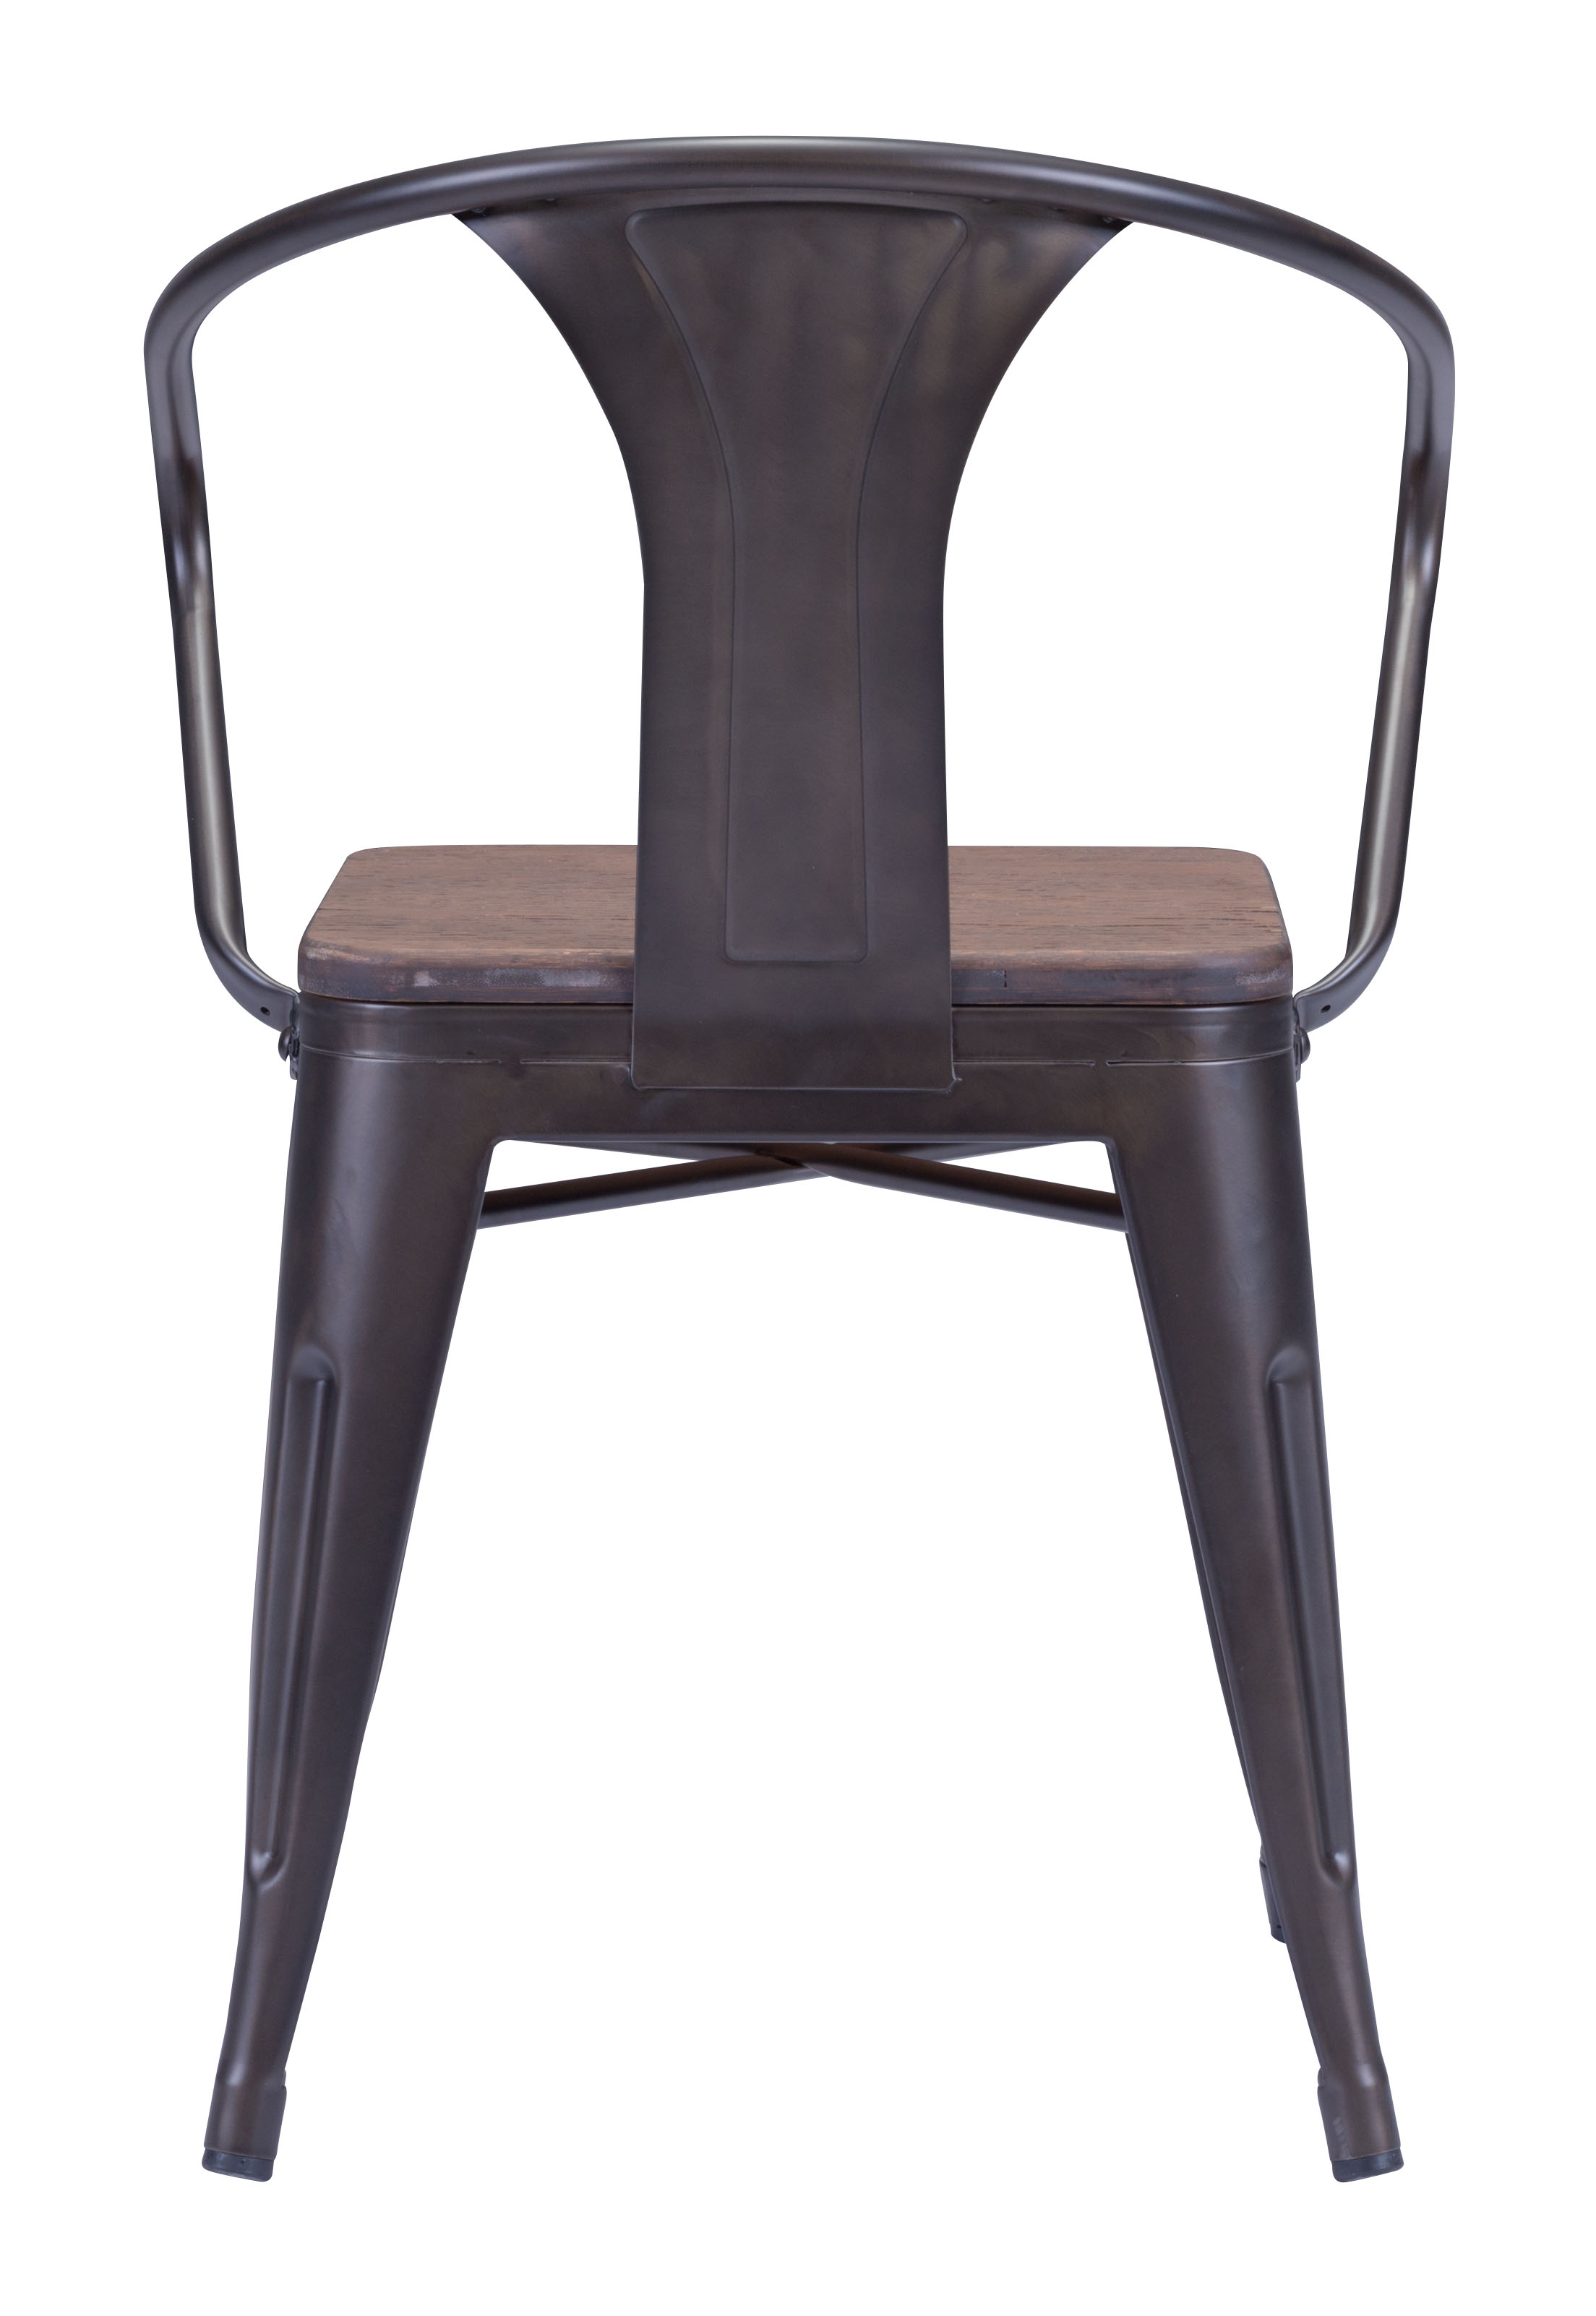 zuo-helix-dining-chair.jpg